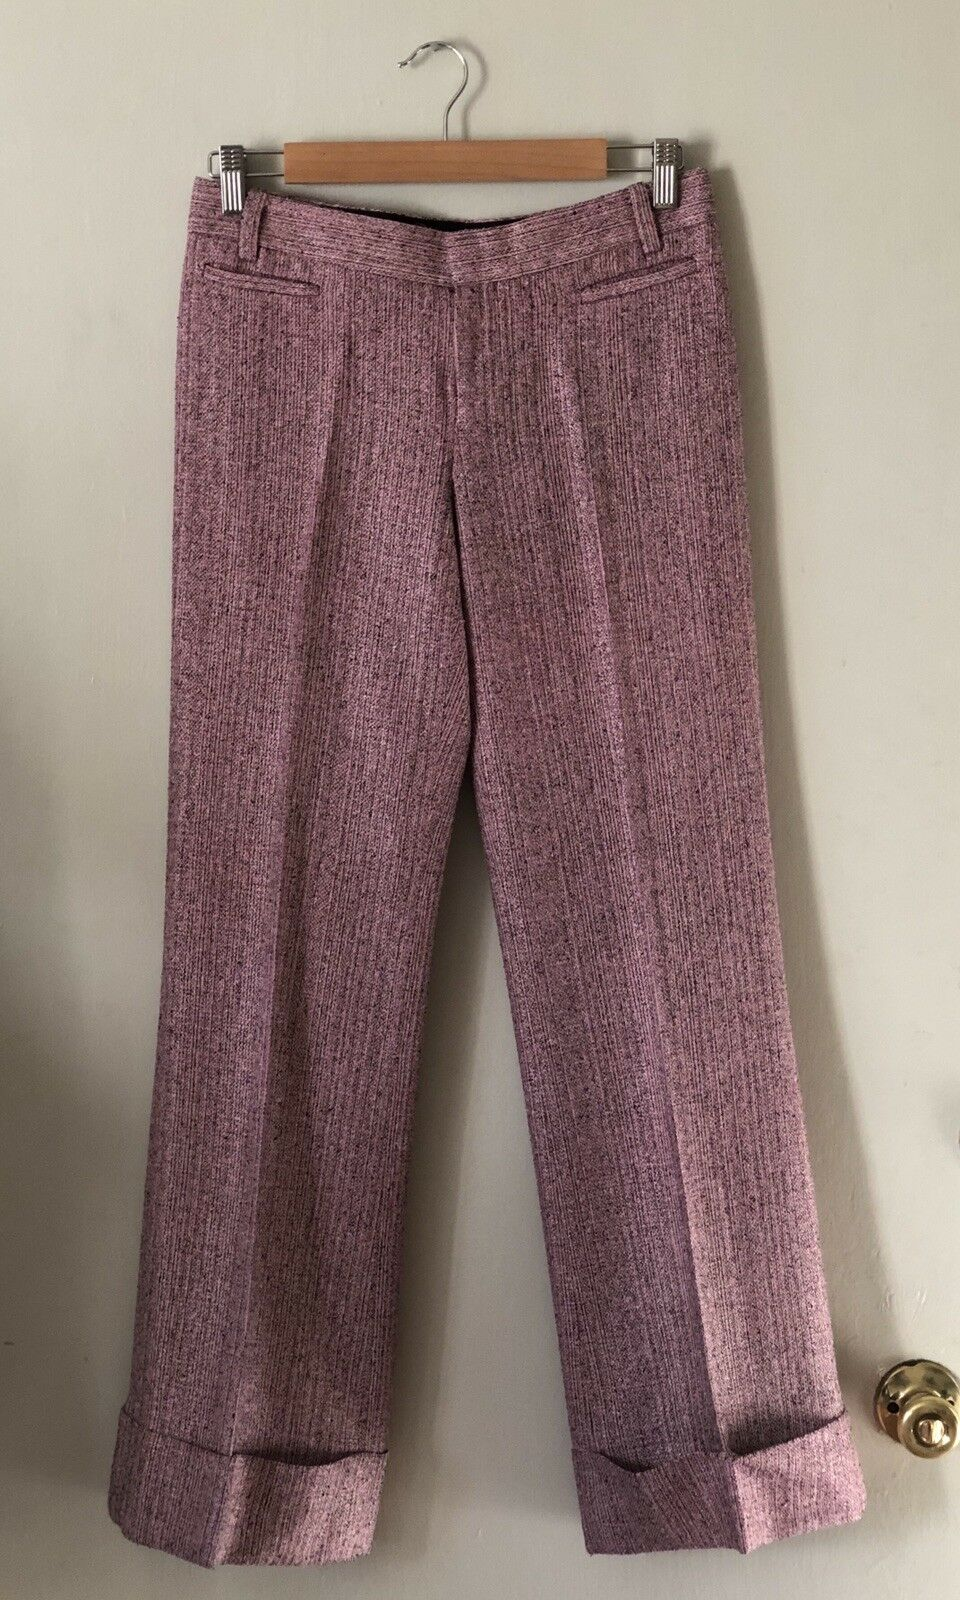 Laundry By Shelli Segal Pink Tweed Wide Leg Cuffed Trouser Pants Size 2